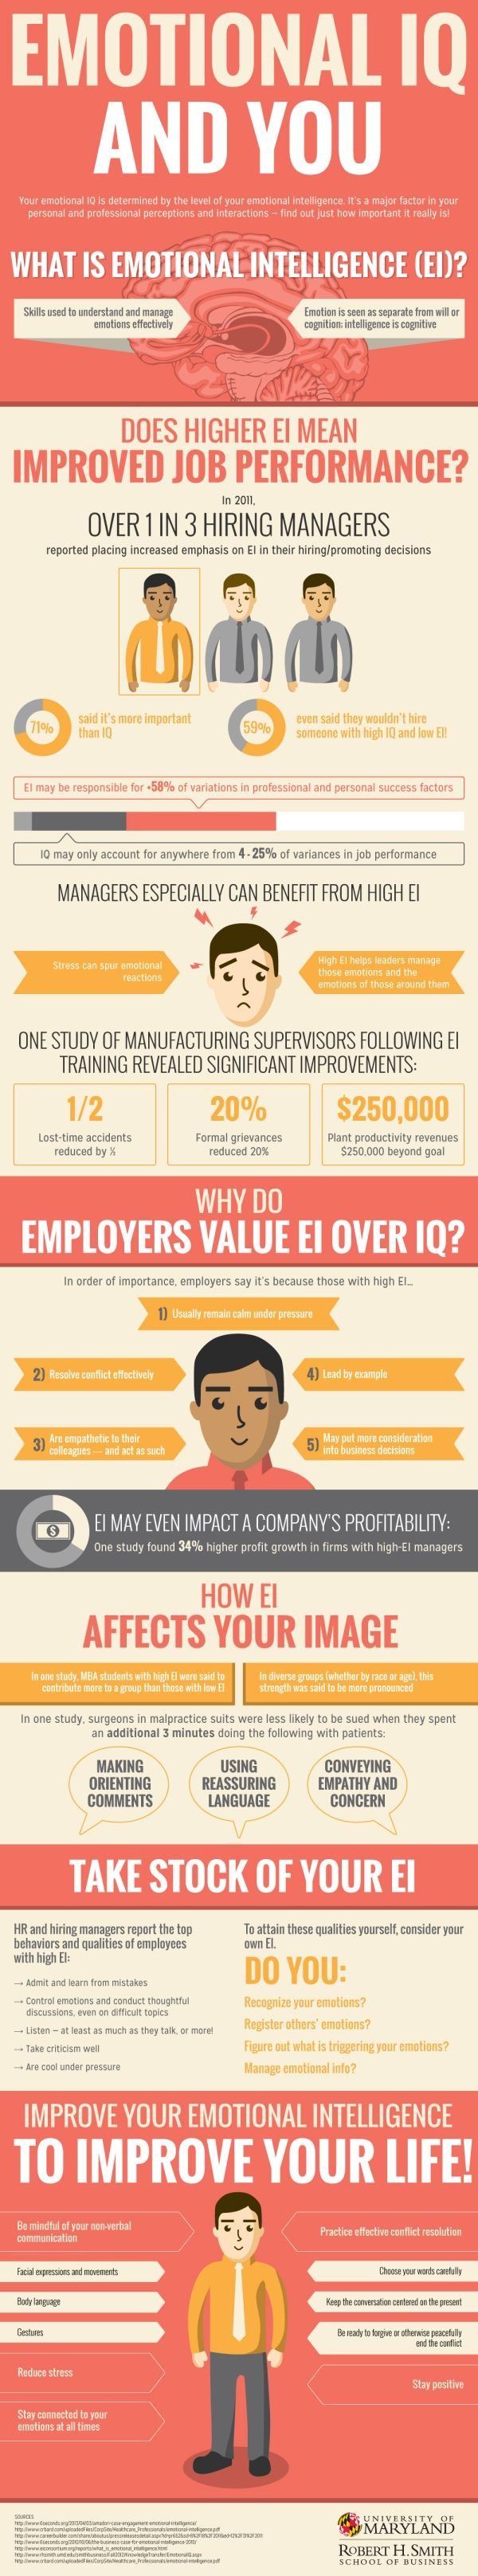 EQ and You: How Does Emotional Intelligence Impact Your Career? [Infographic]